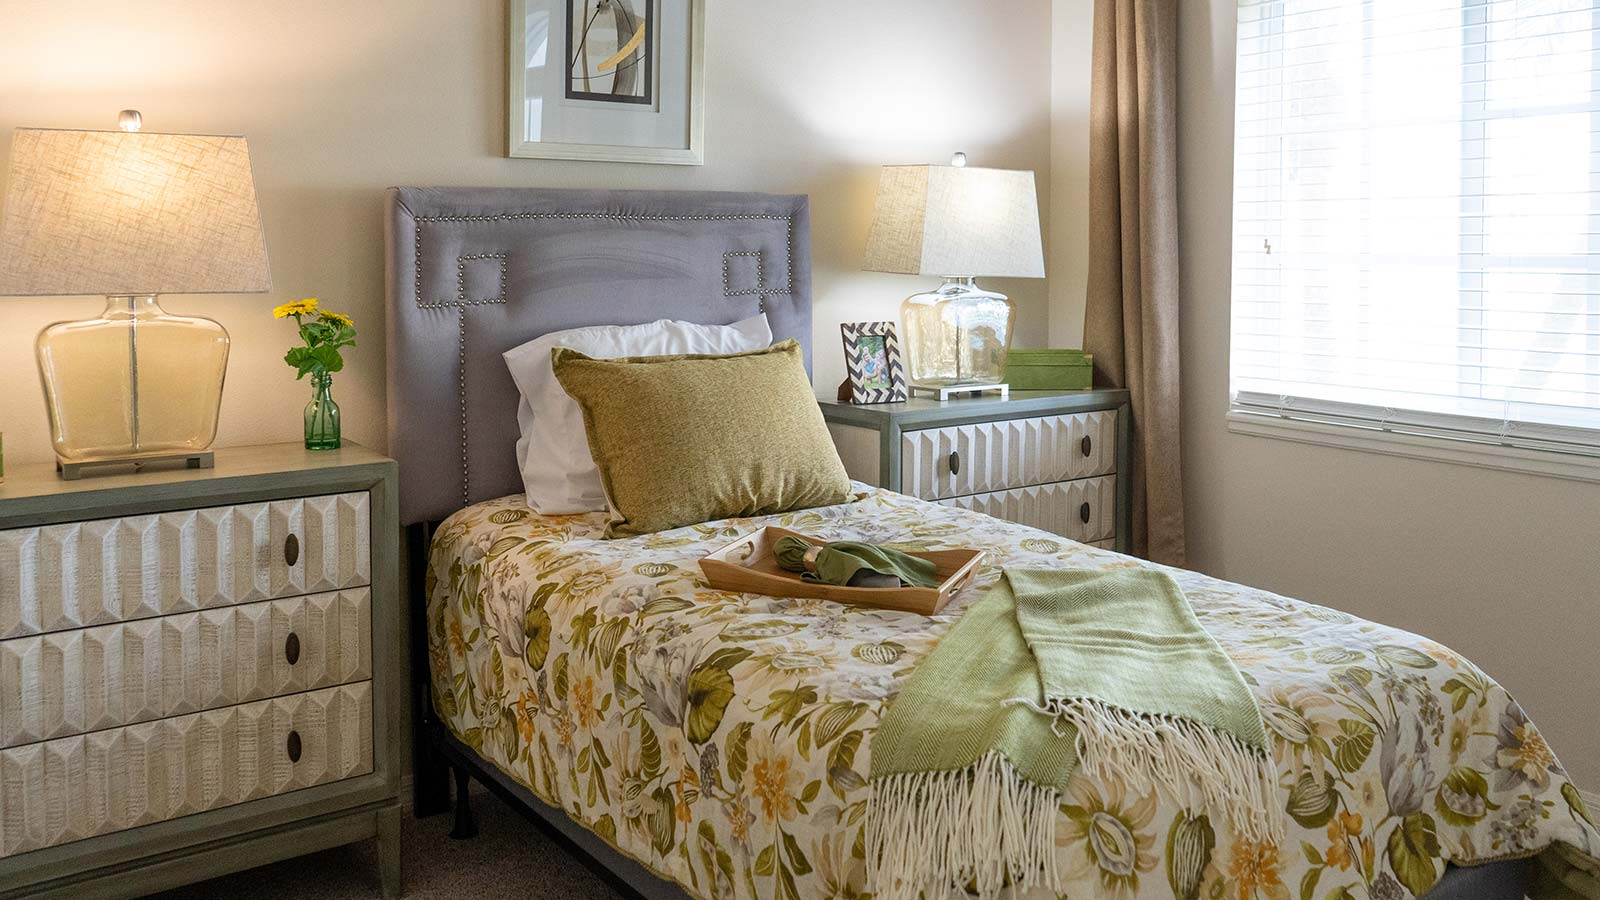 Model apartment bedroom at Heron Club assisted living and memory care in Sarasota Florida